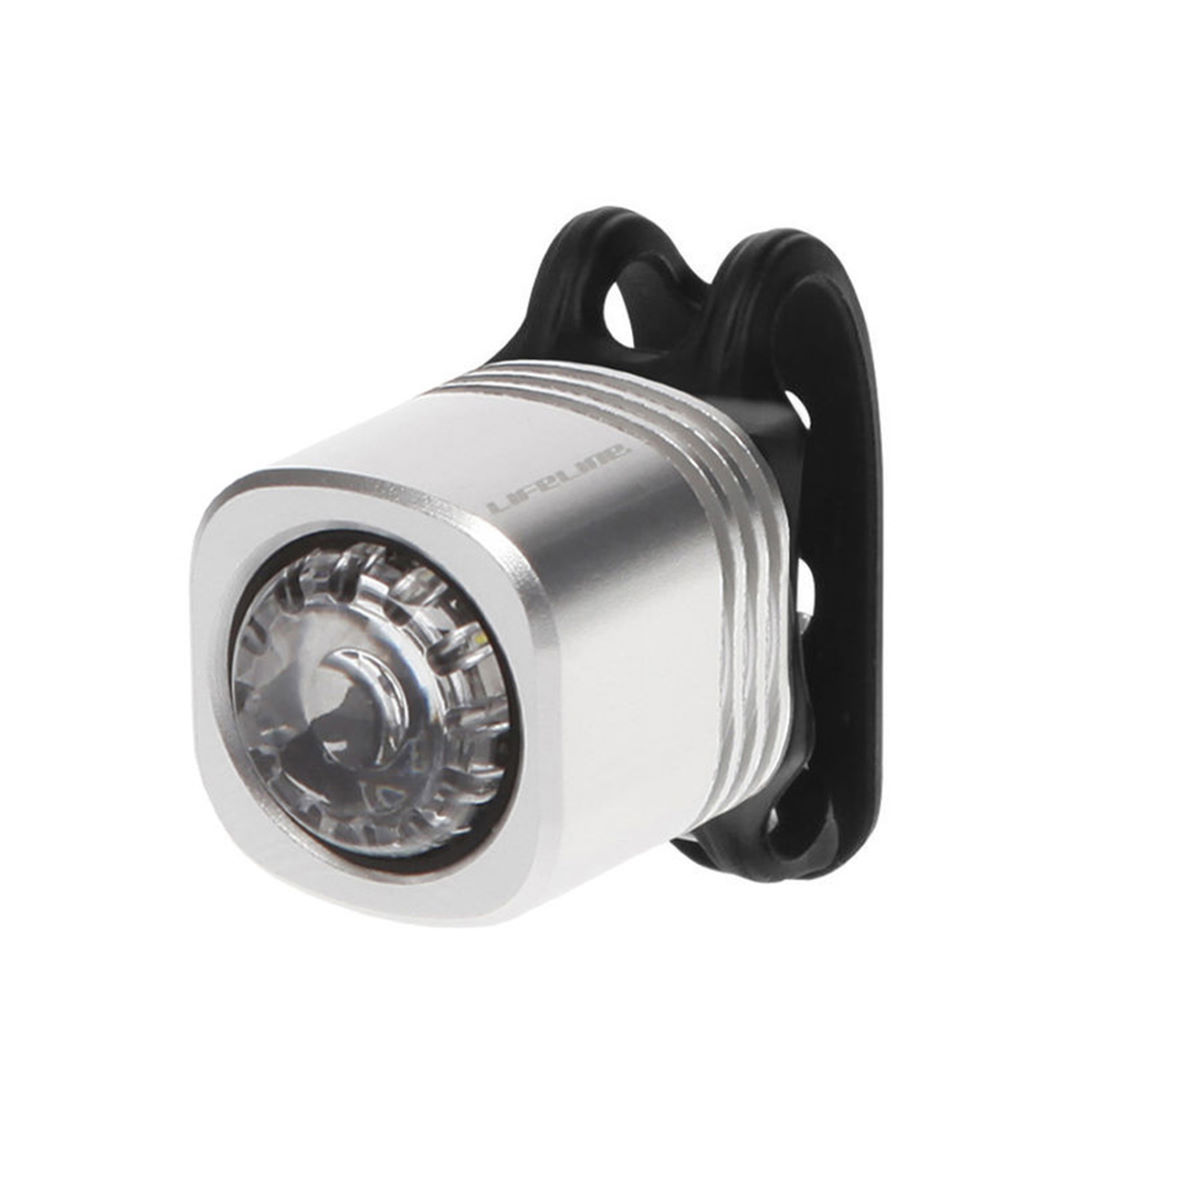 LifeLine USB LED Single Beam 40 lumen Front Light